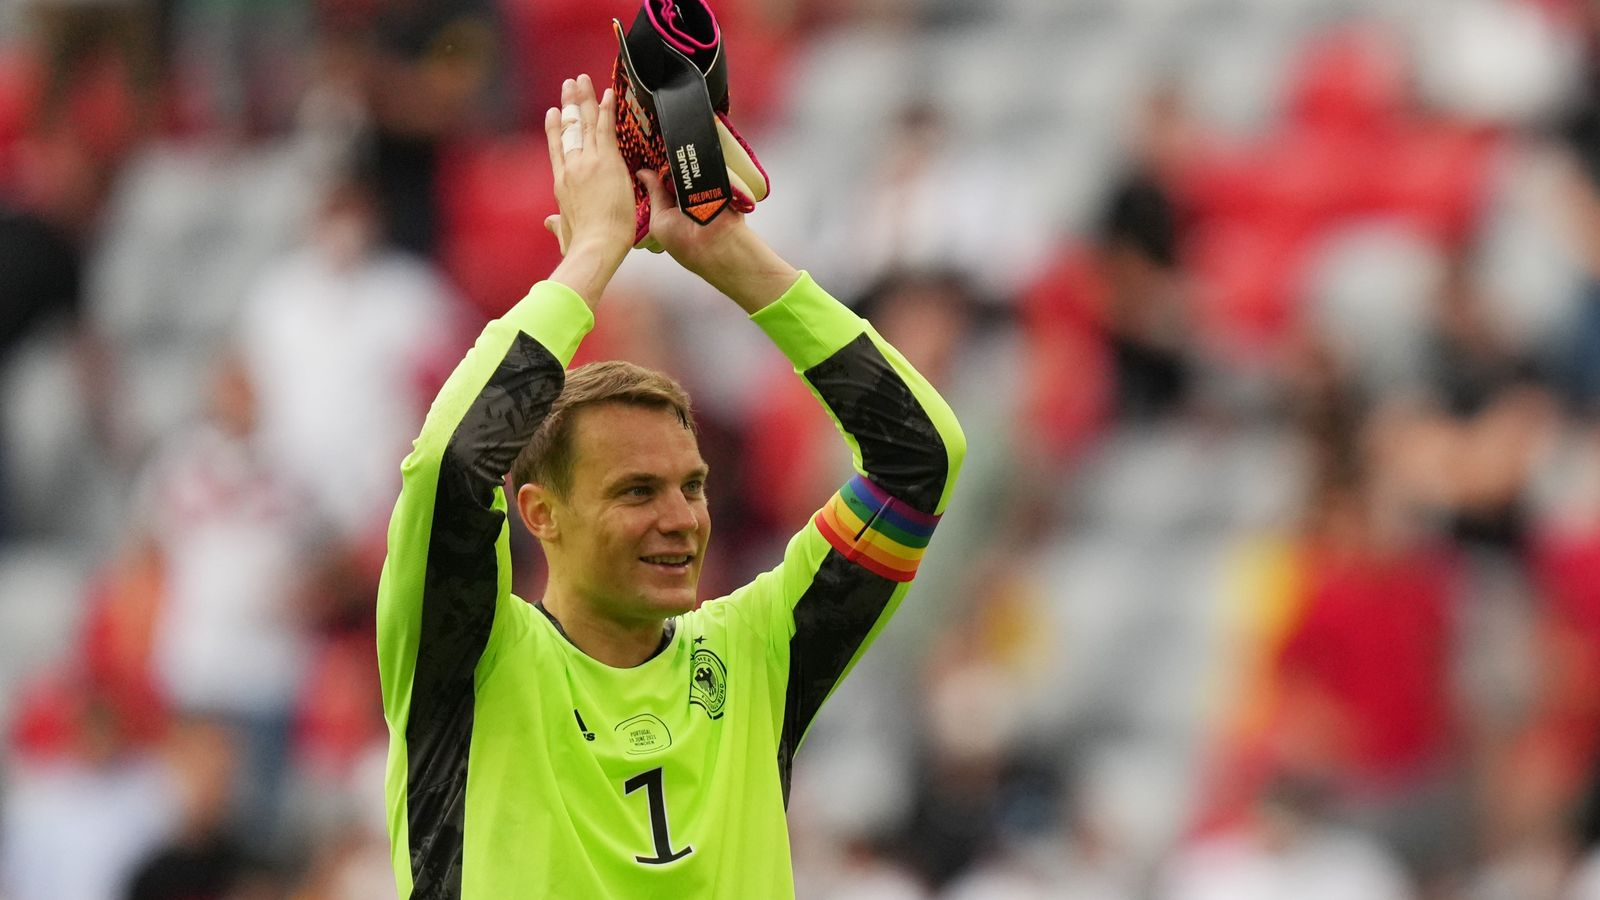 Manuel Neuer: Footballer who wore rainbow armband during Euro 2020 games won't face disciplinary action